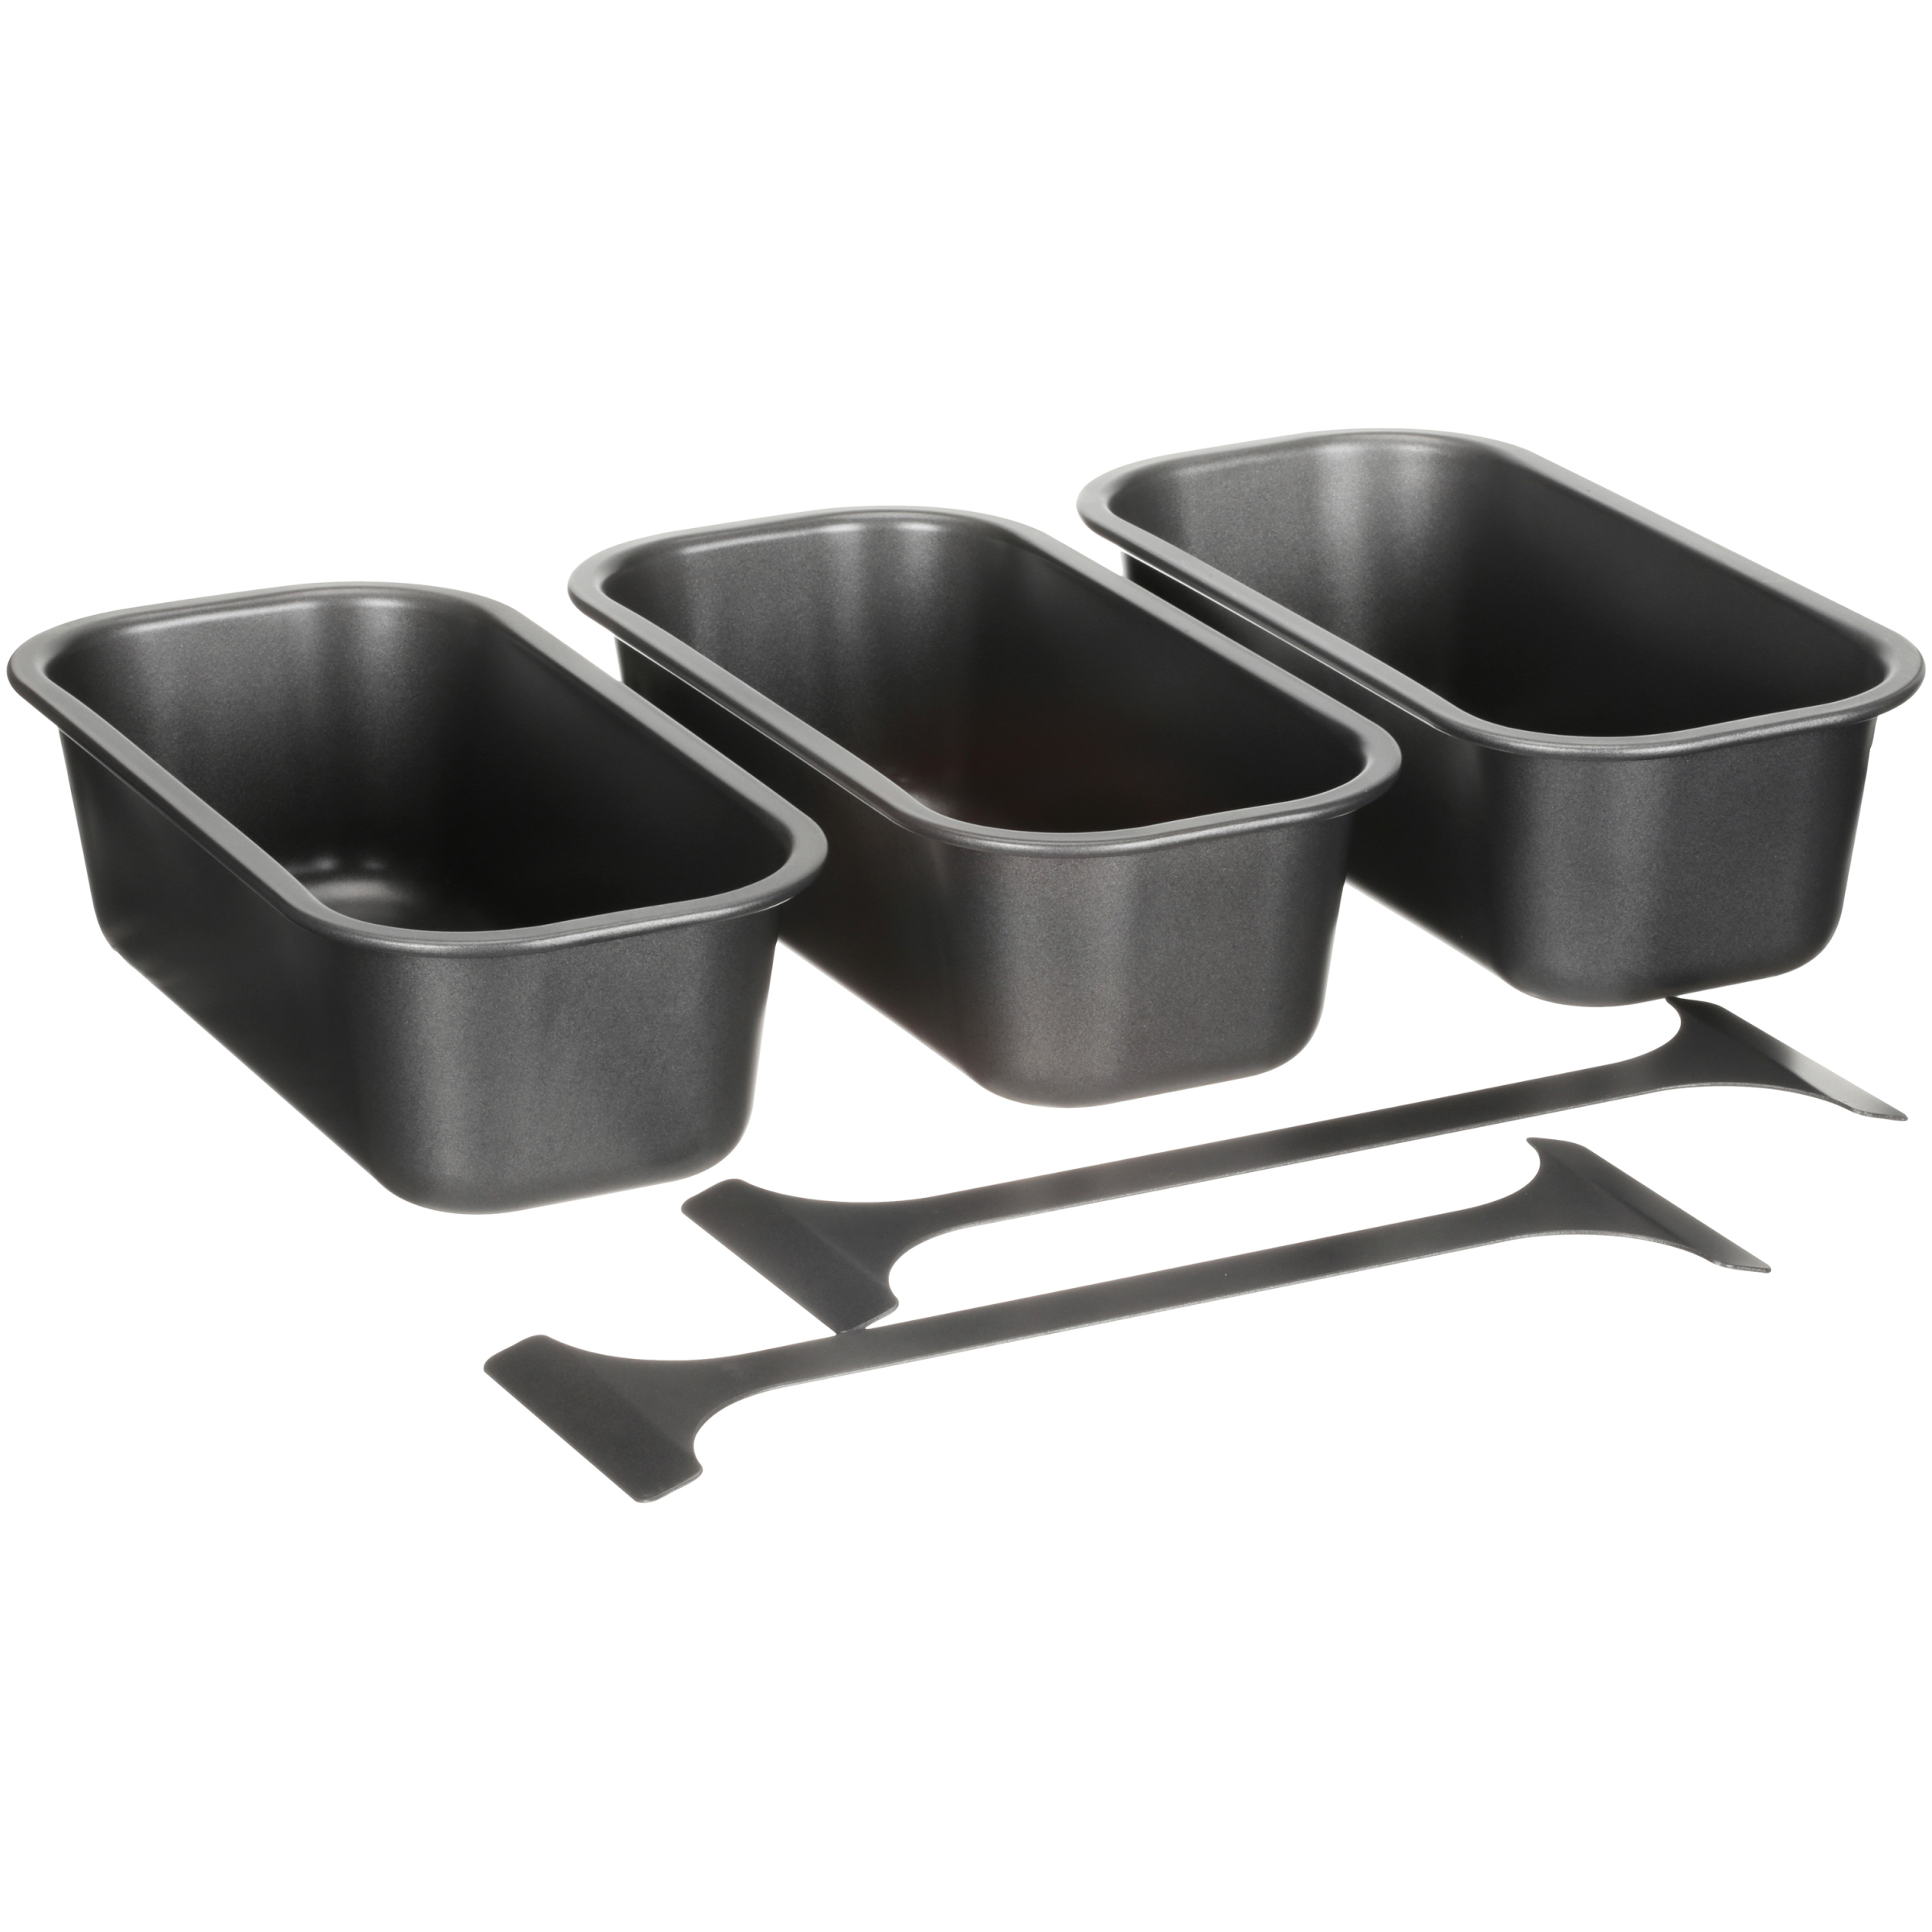 Nesco 4908-12-40PR Non-Stick 3-Piece Buffet Kit